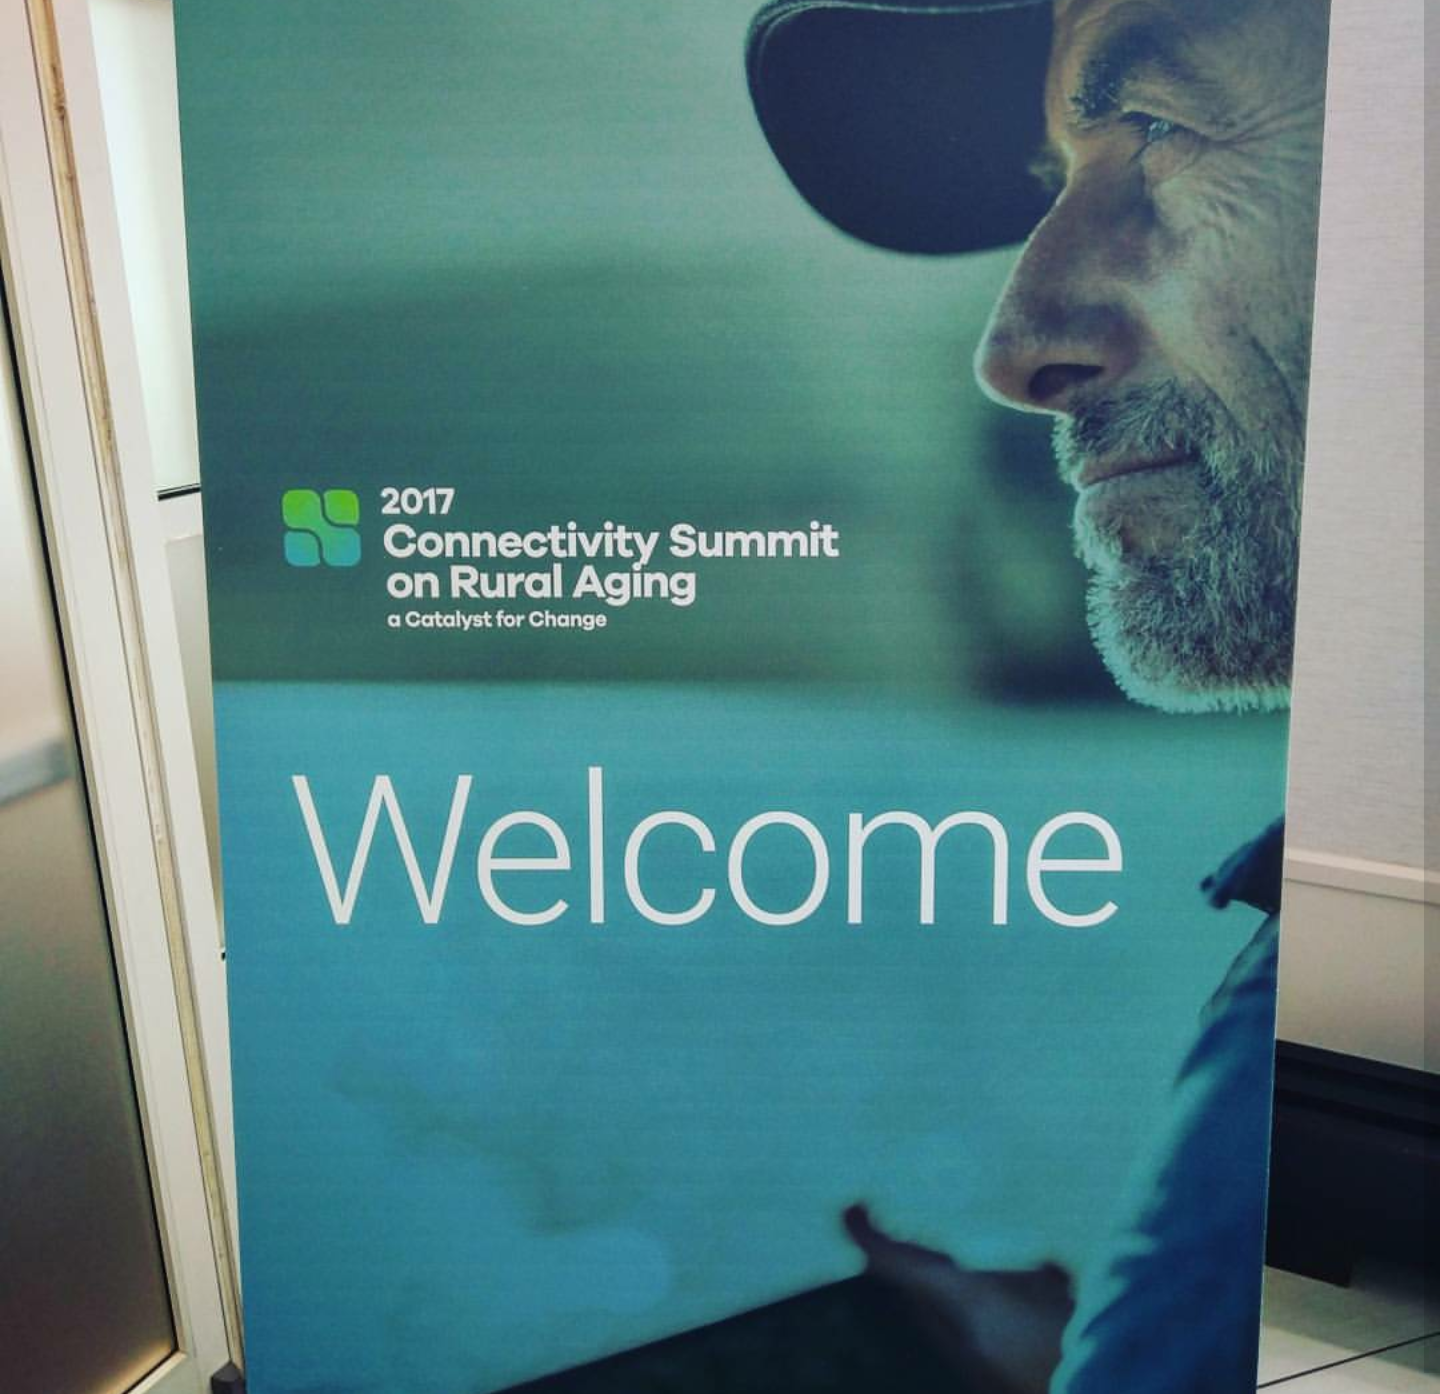 Beginning a Movement: Connectivity Summit on Rural Aging